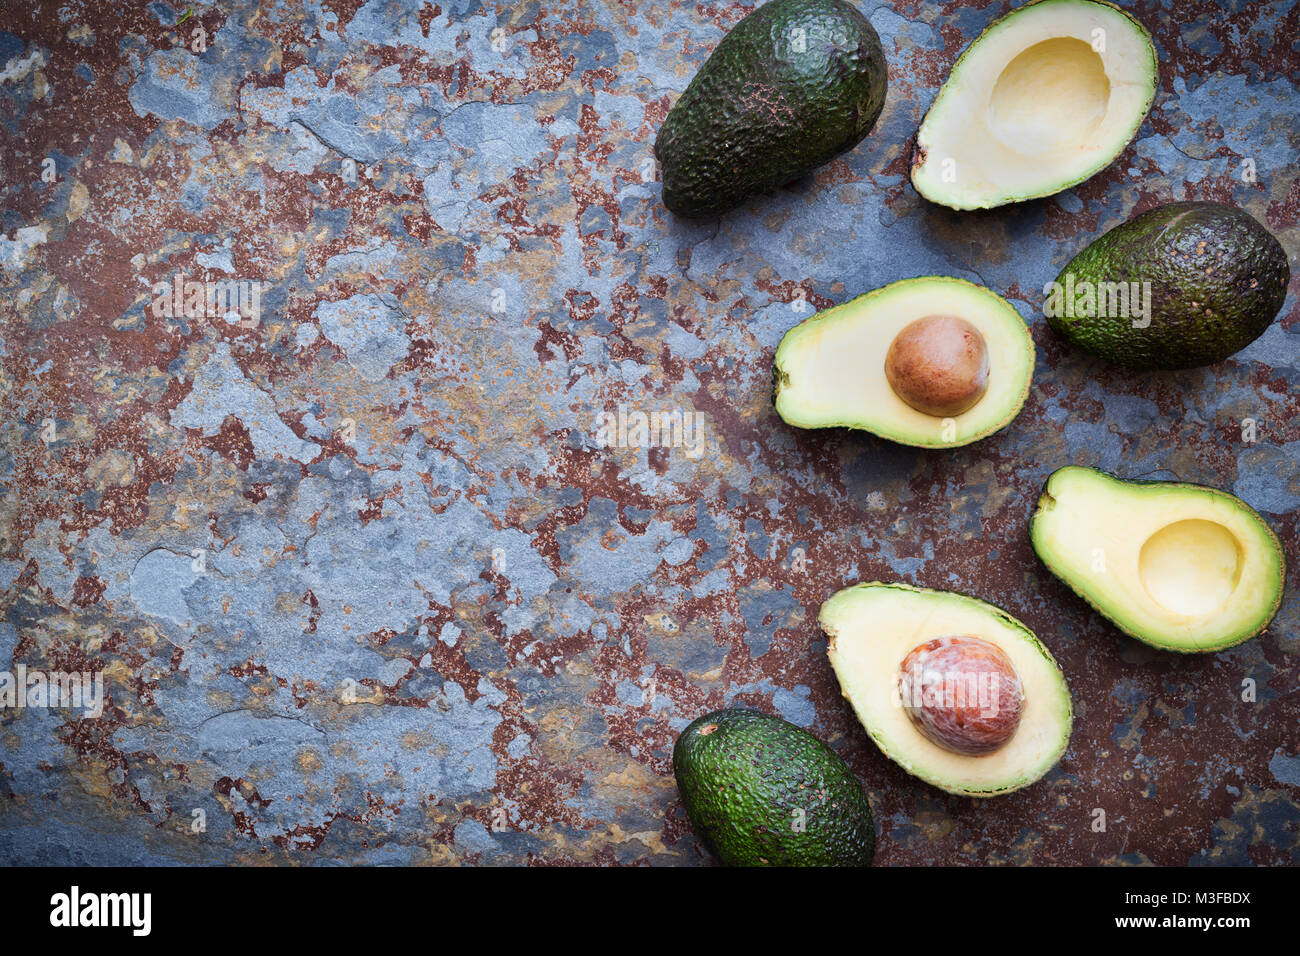 Persea americana. Avocado pattern on a slate background - Stock Image